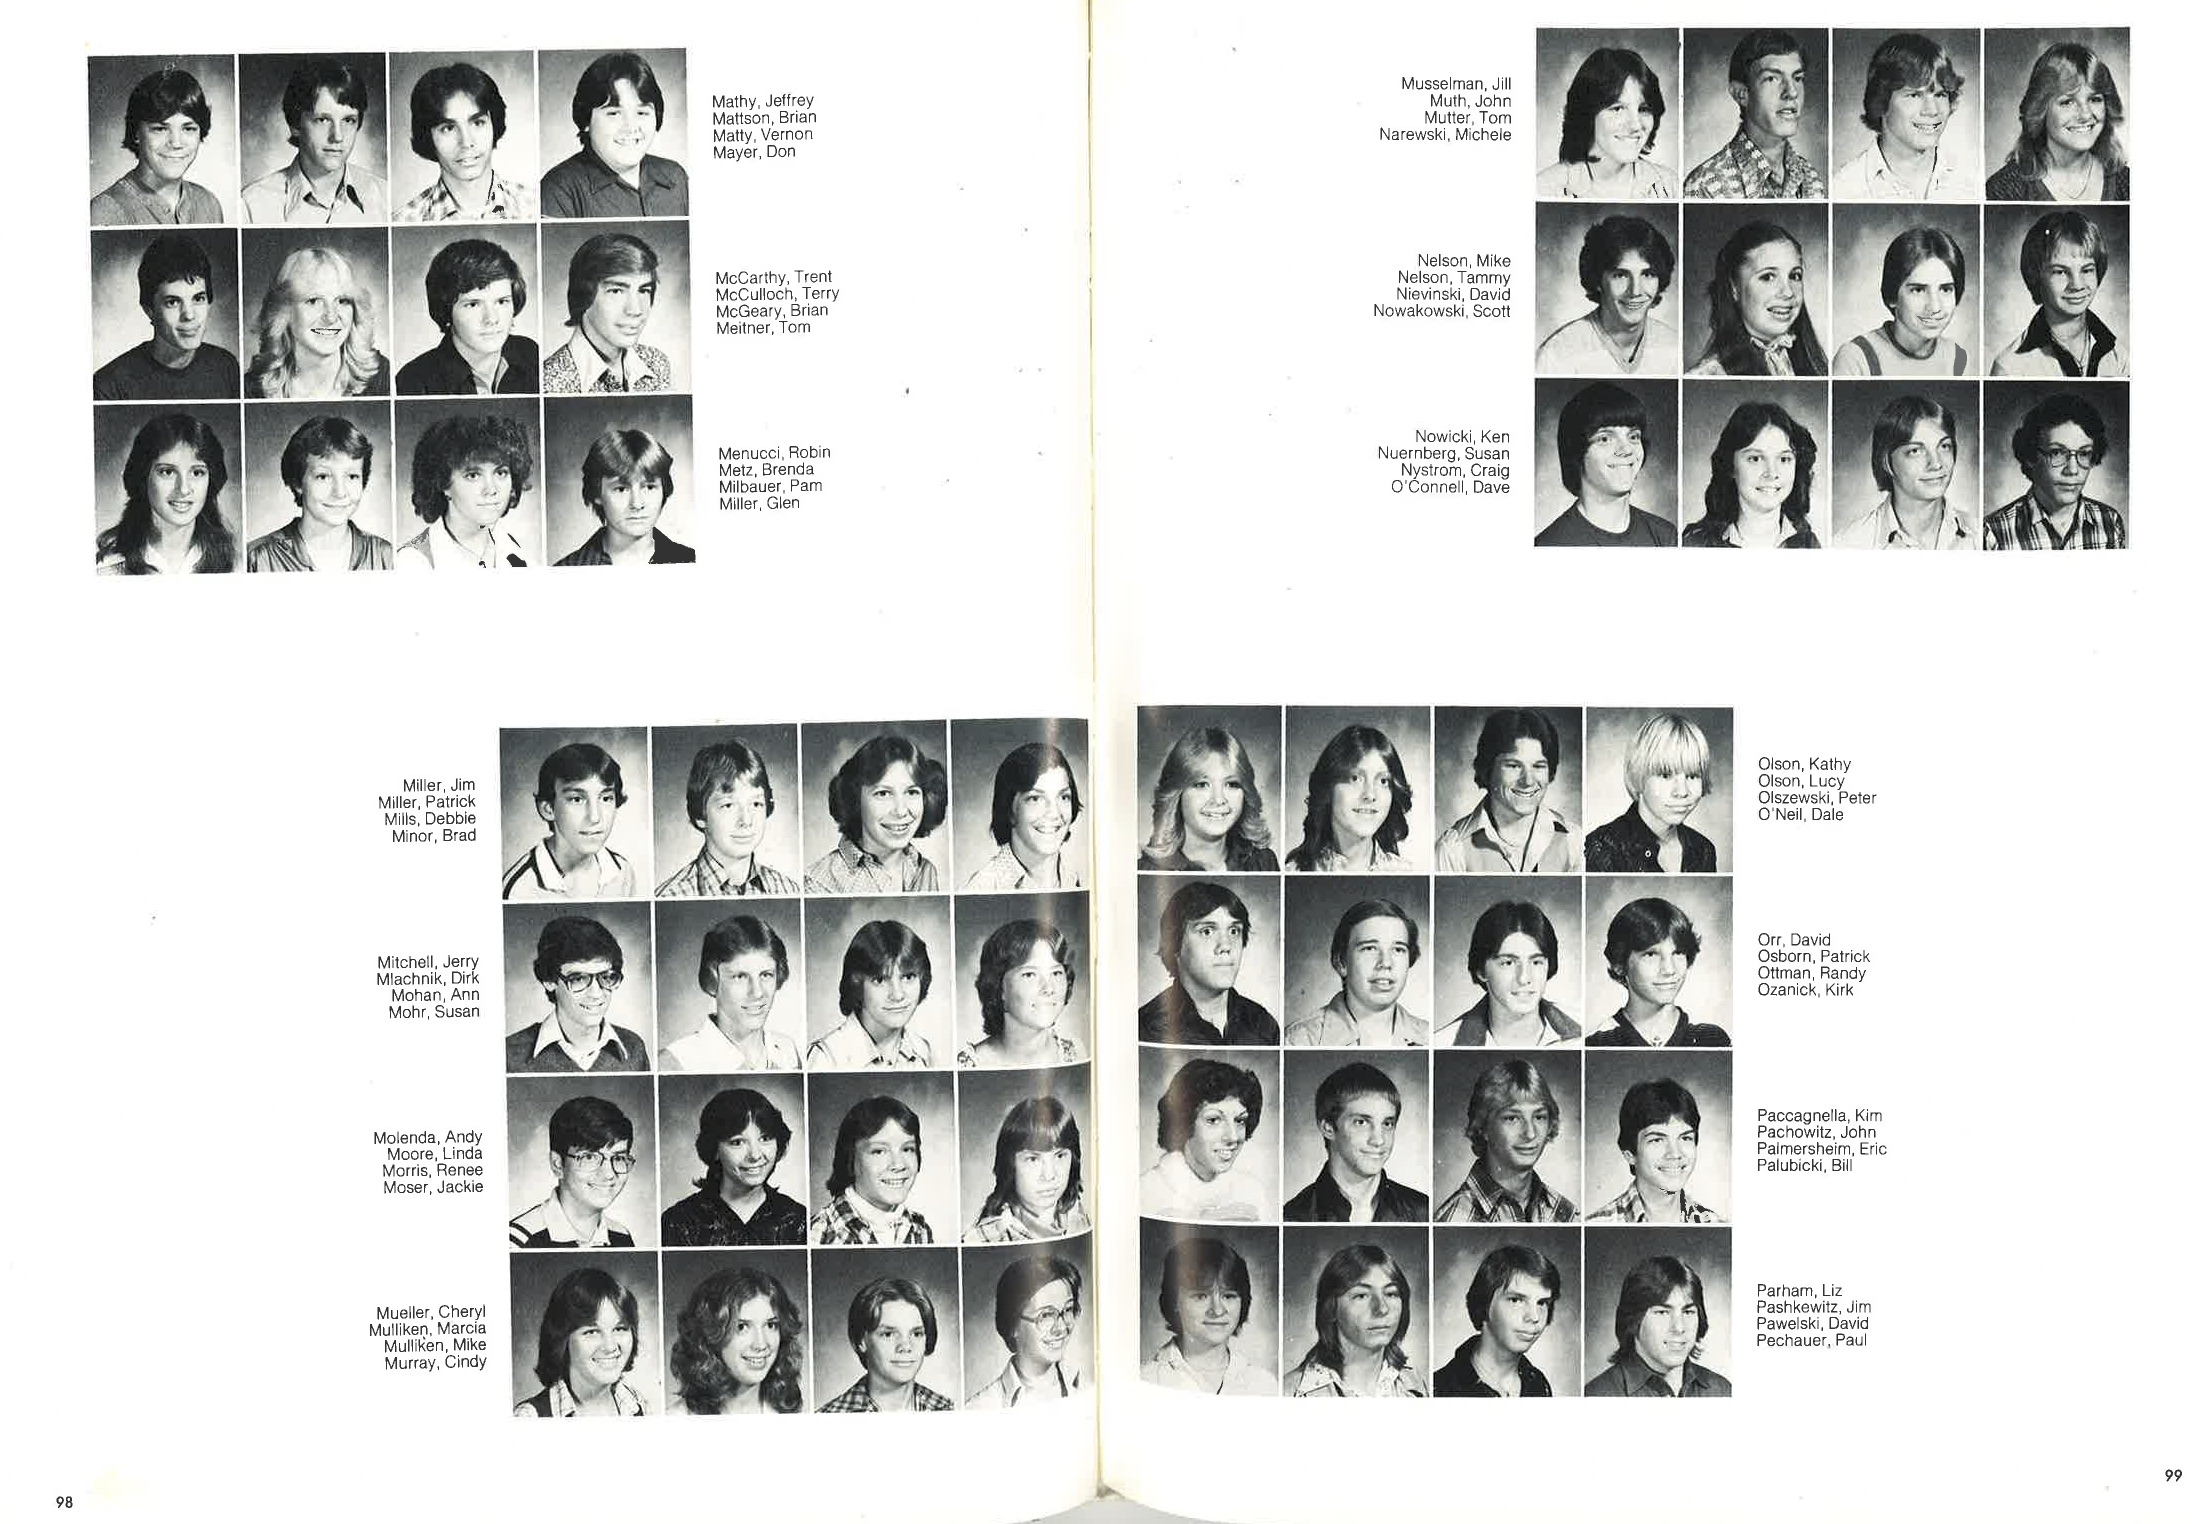 1980_Yearbook_98.jpg